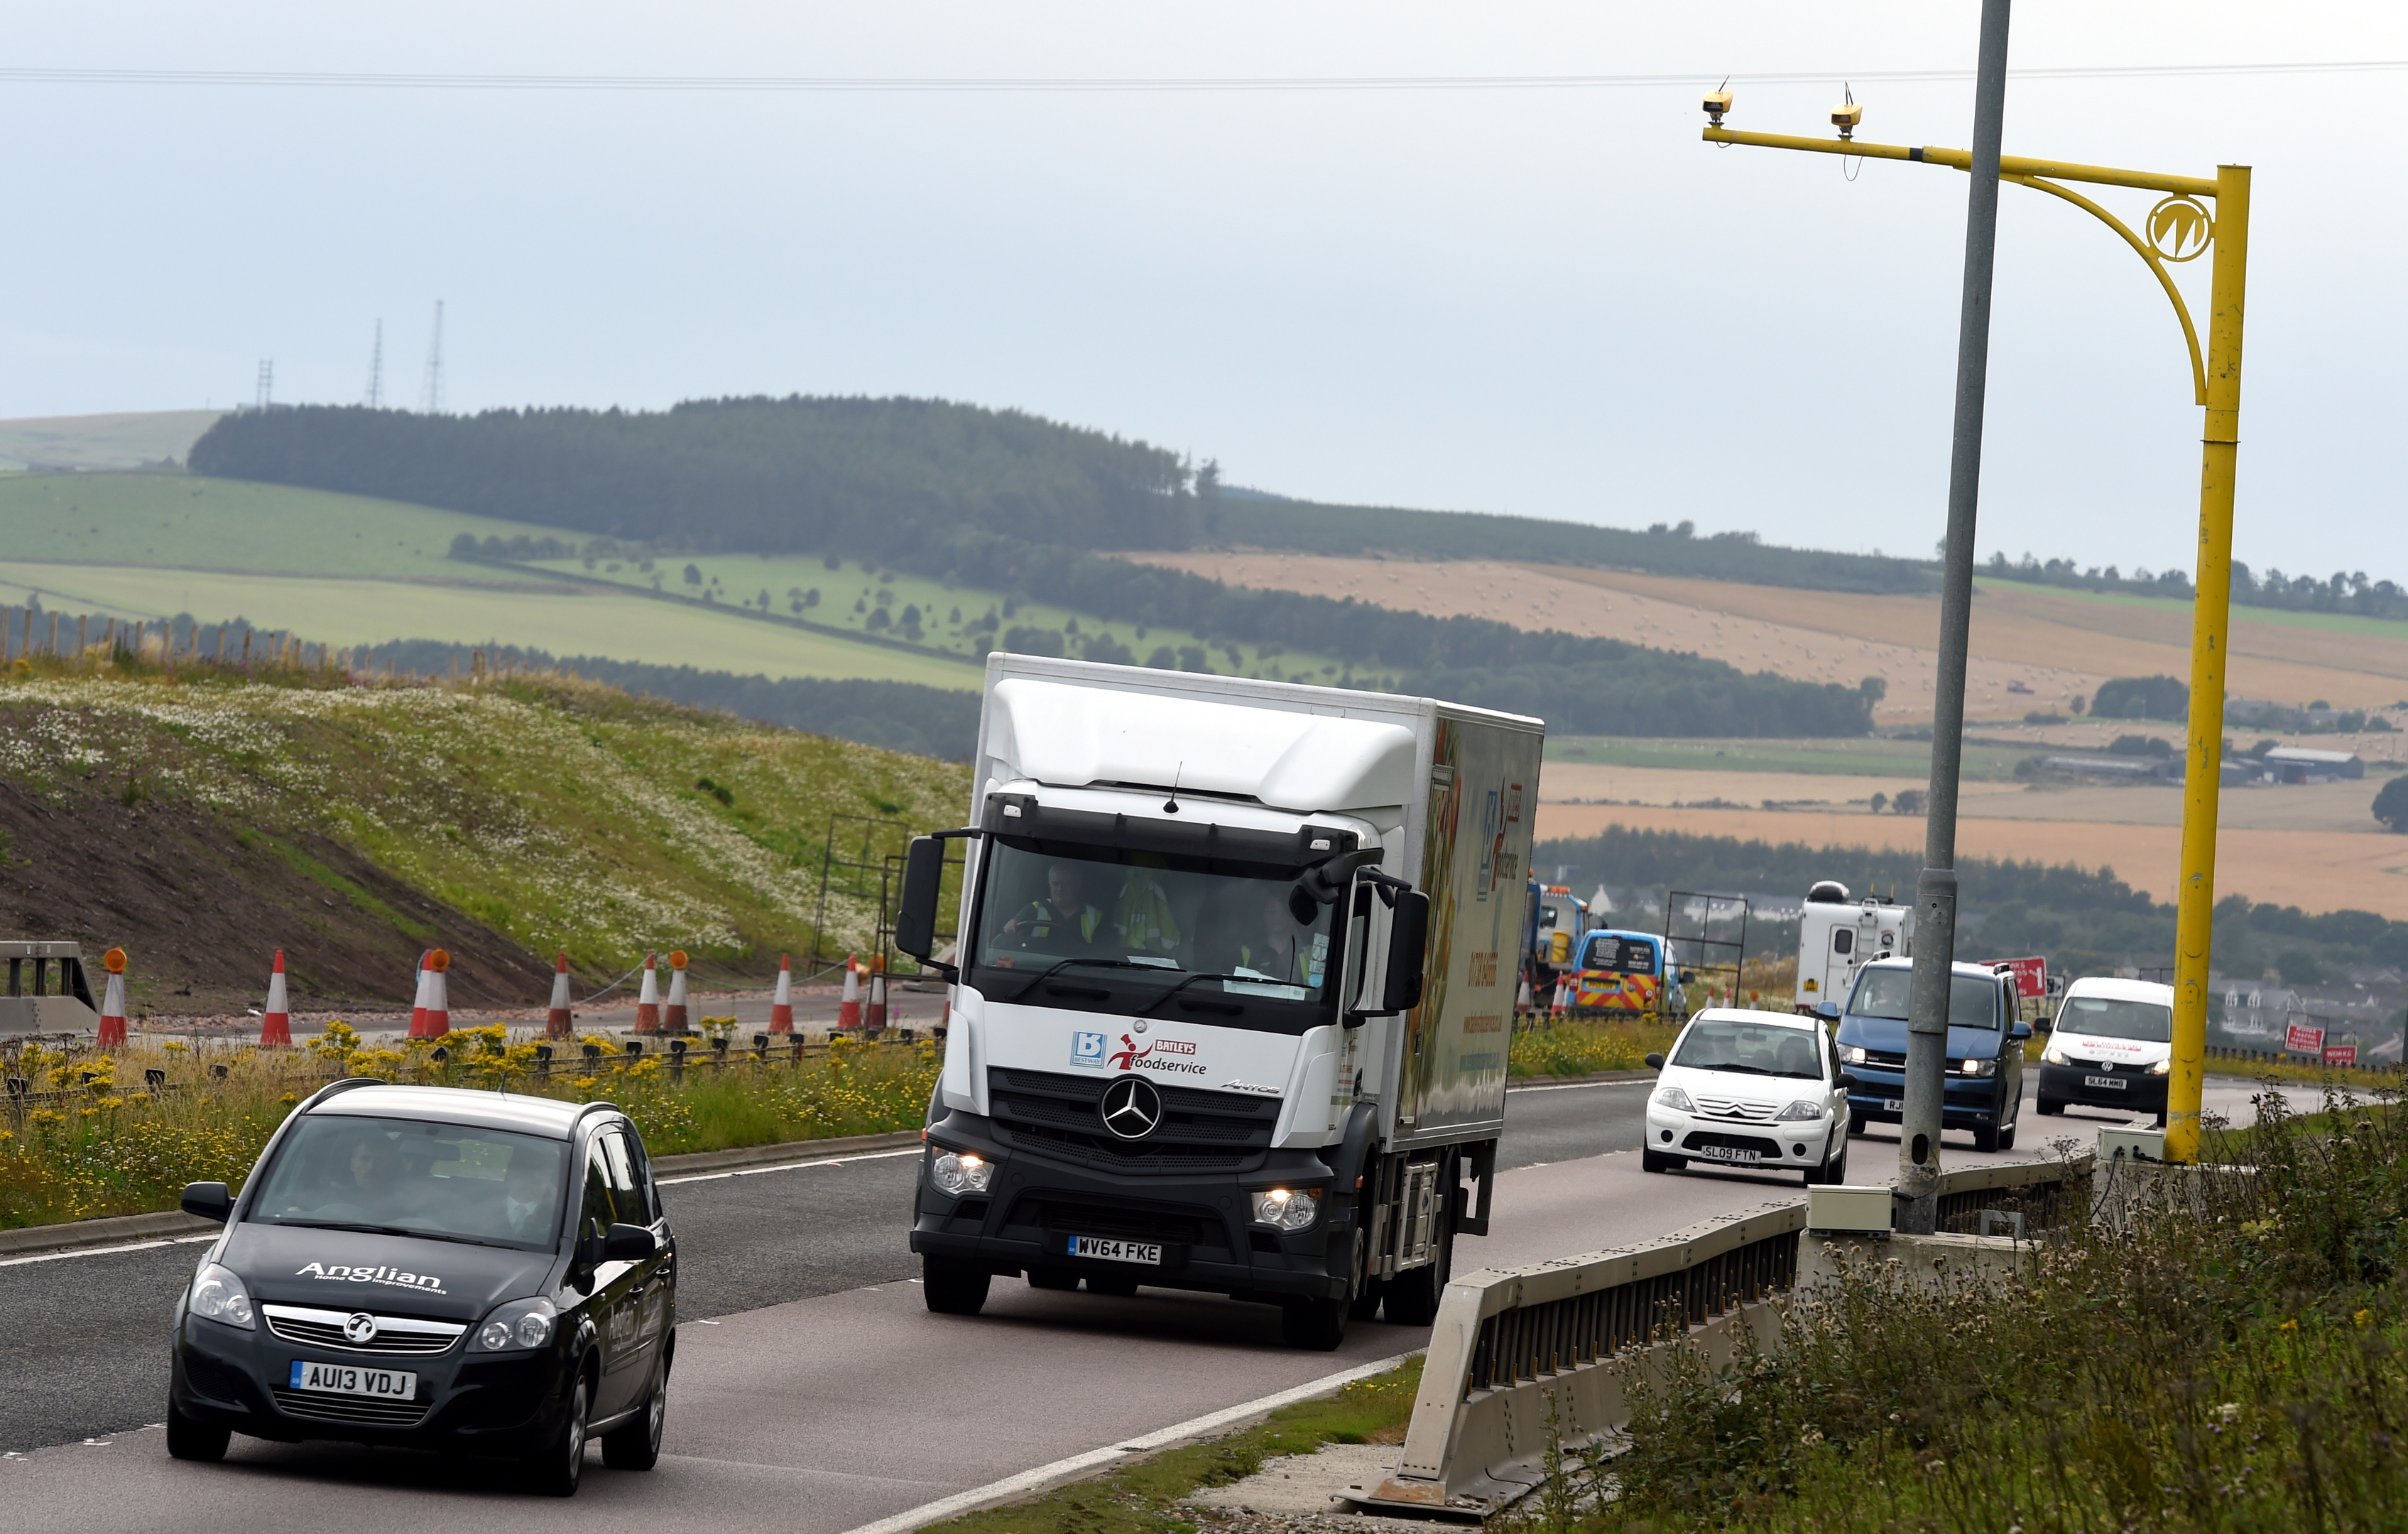 Average speed cameras on the A90 north of Dundee